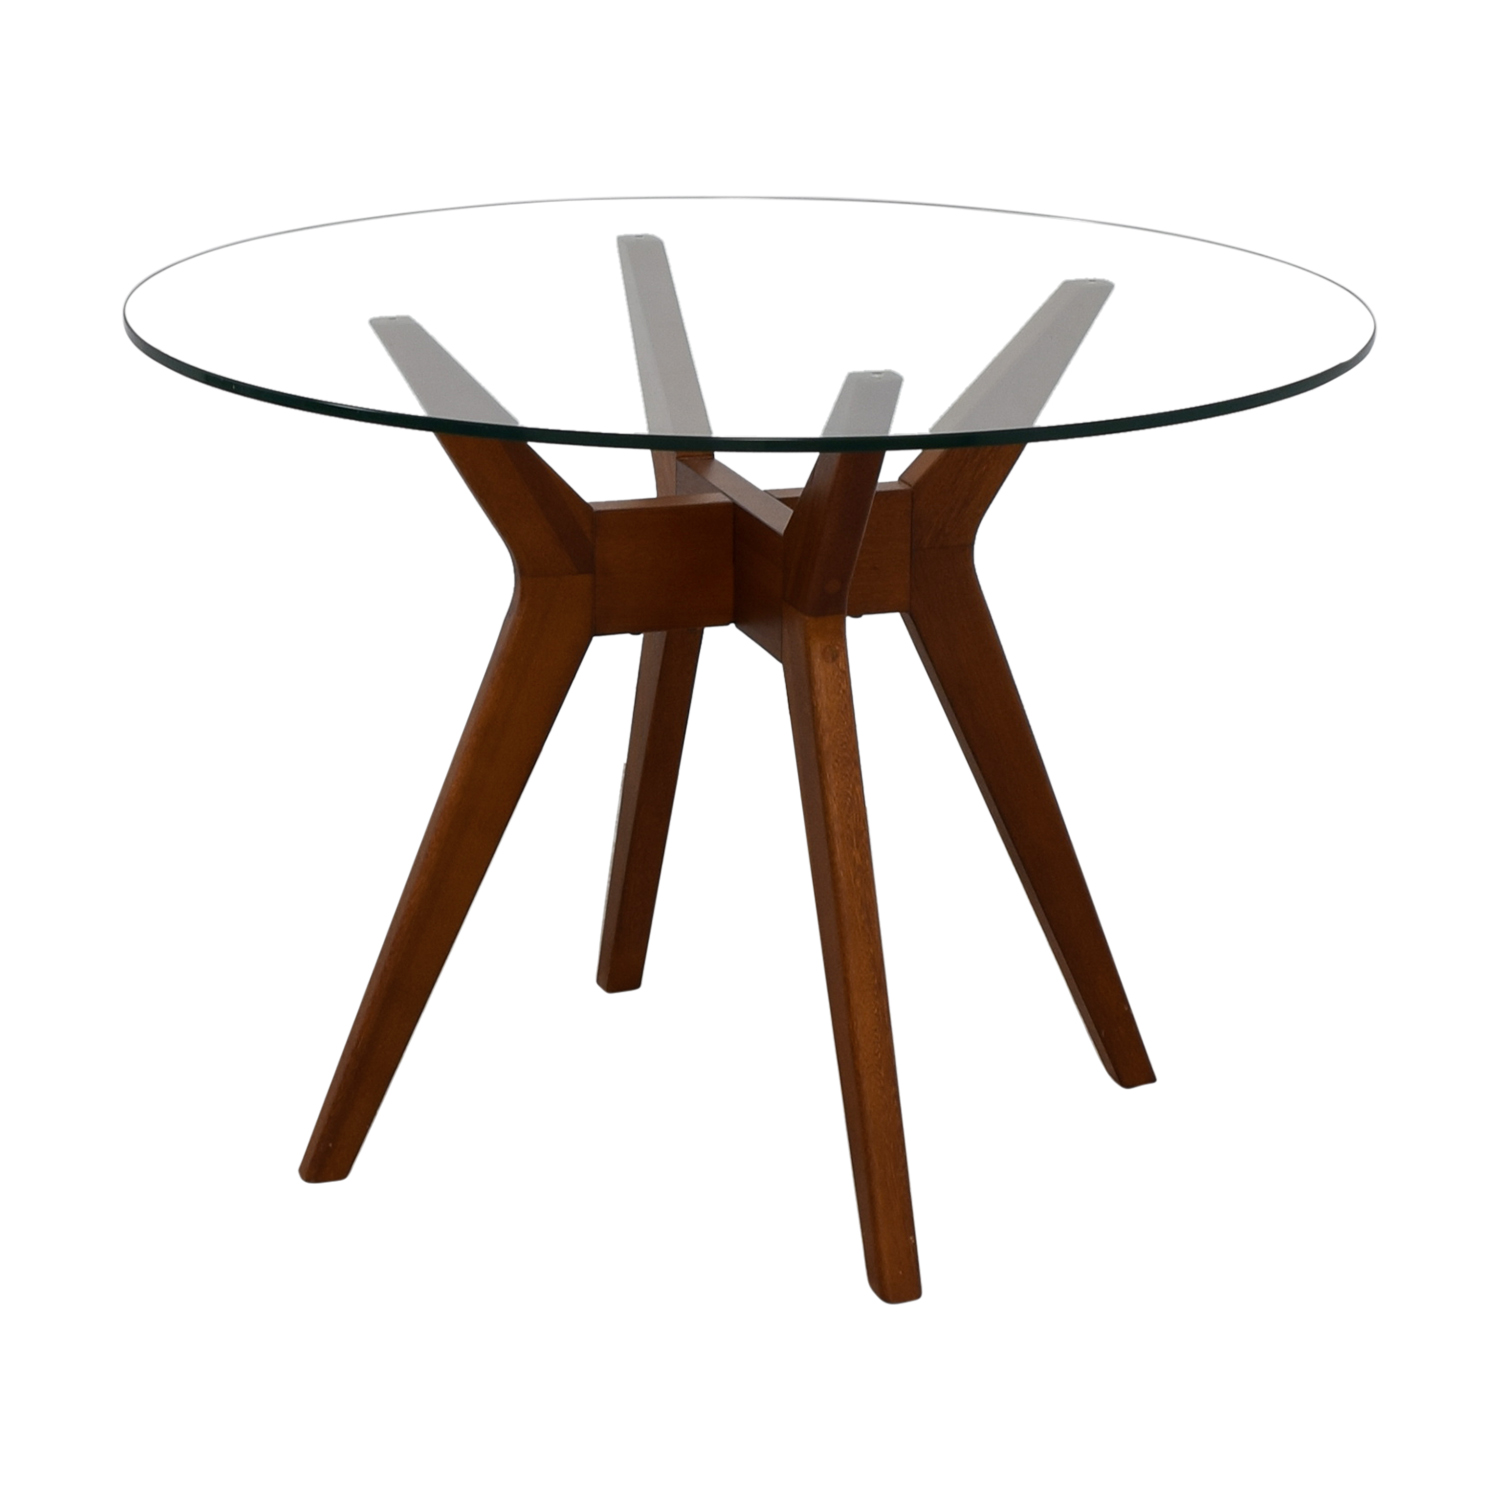 68 Off West Elm West Elm Jensen Round Glass Dining